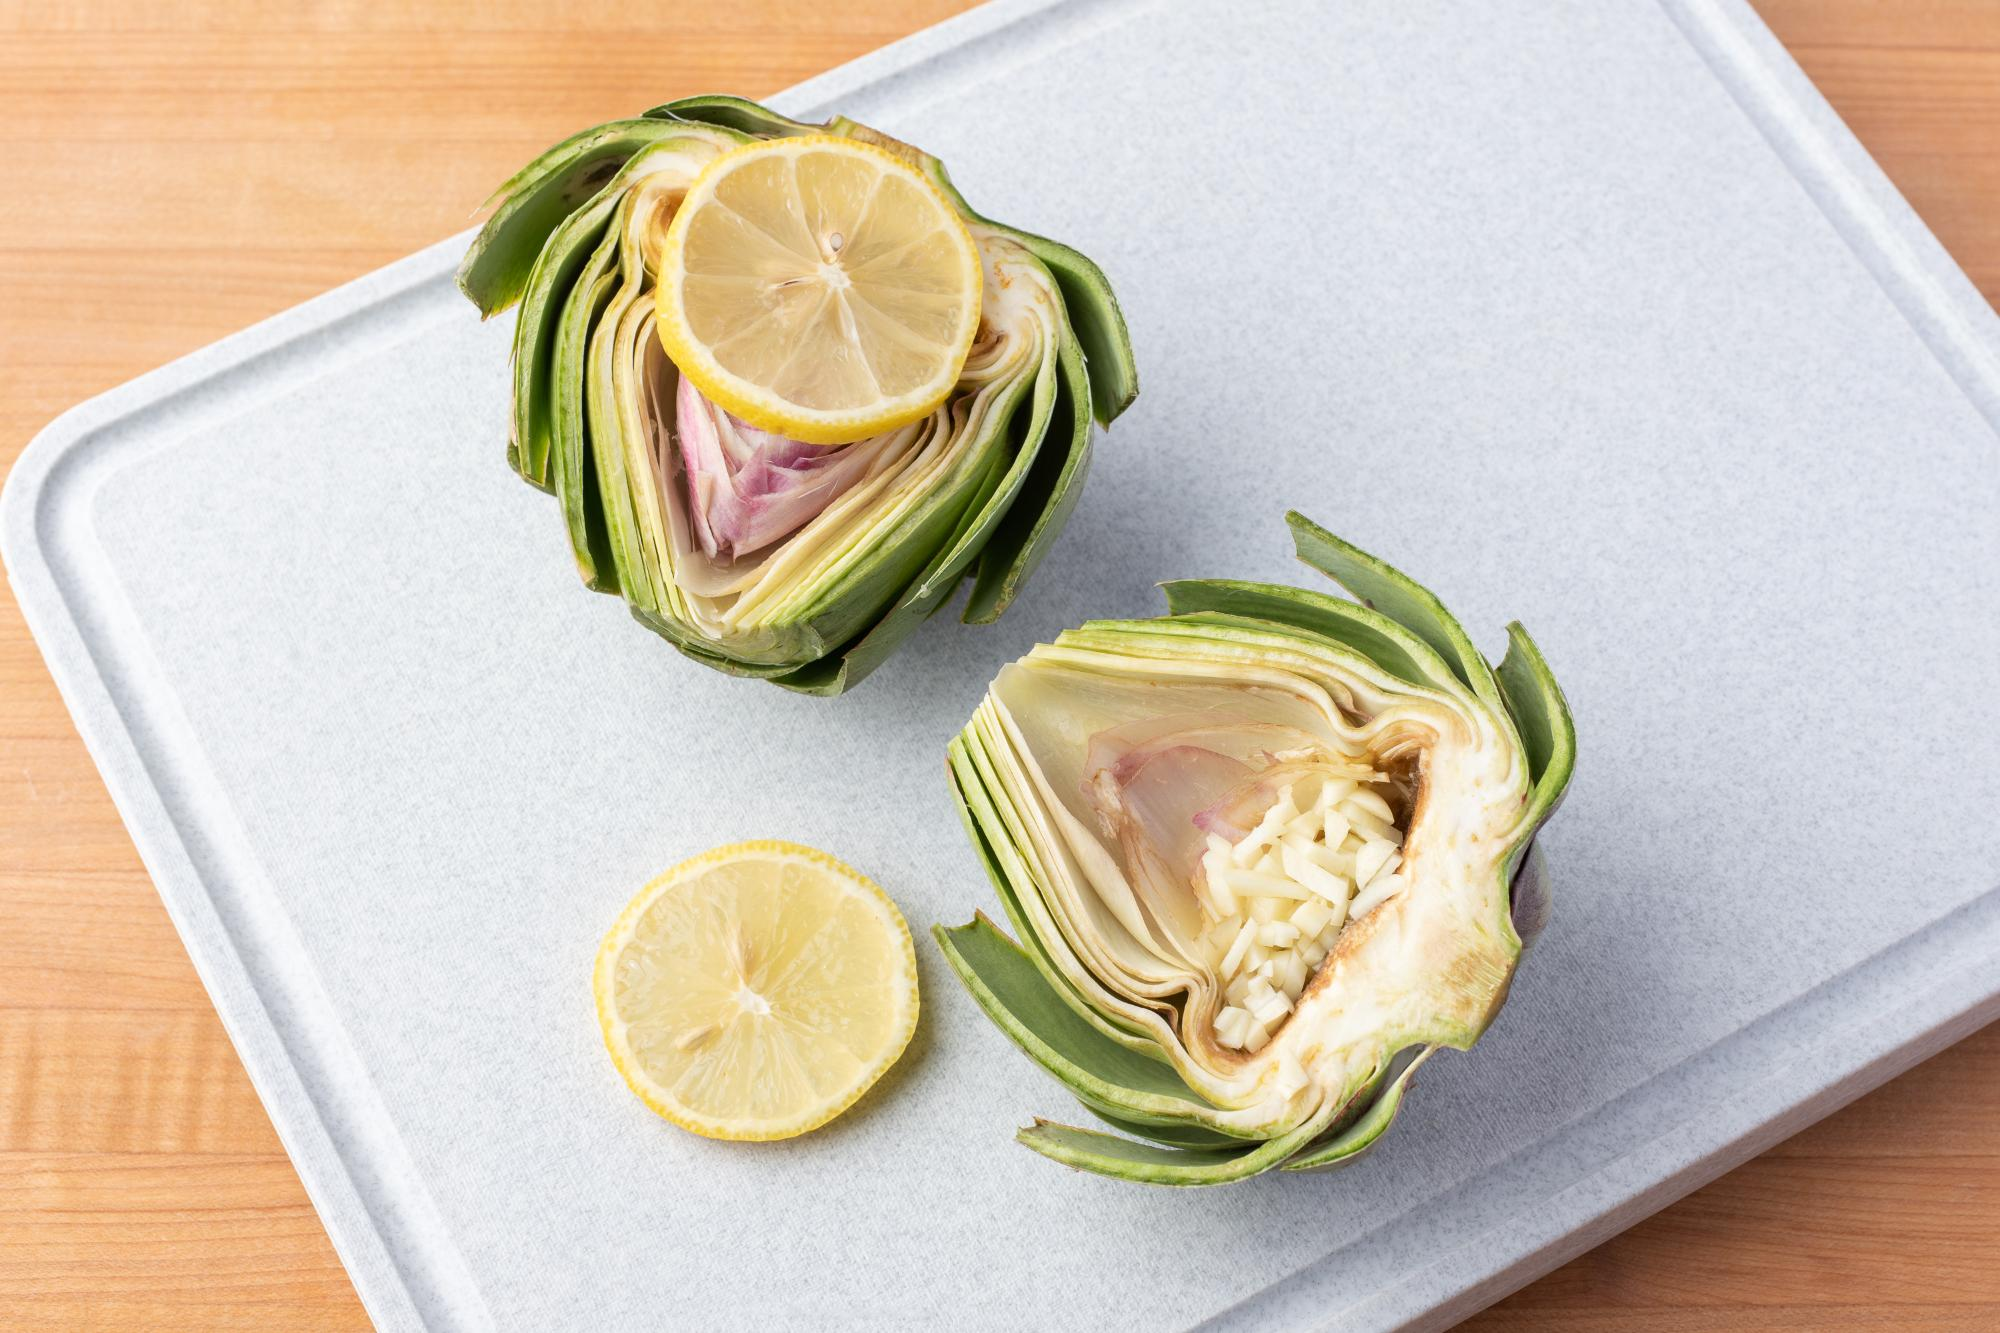 Filling the artichoke with garlic and covering it with a lemon slice